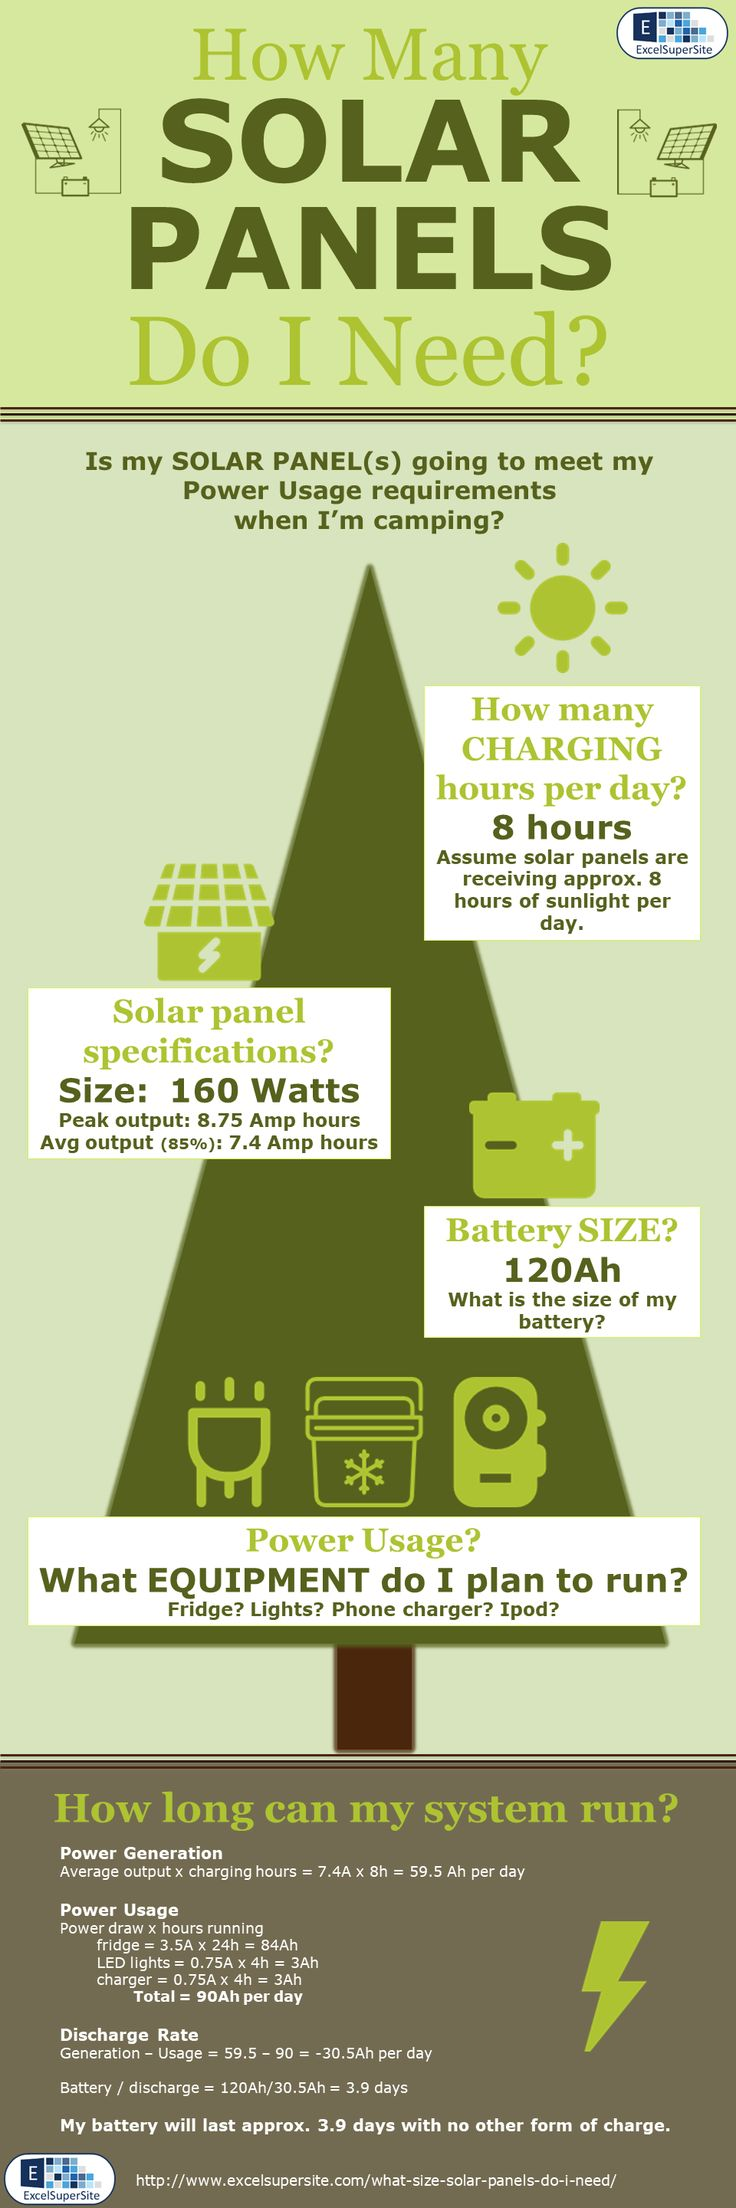 So how many and what size solar panels do you need to meet your camping power usage requirements? A simple enough question to ask, but unfortunately not always a simple question to answer. Fortunately, we have developed a simple to use Excel spreadsheet, that allows you to input information about the equipment you use and your power usage and it will let you know if your solar panels will typically meet your needs.